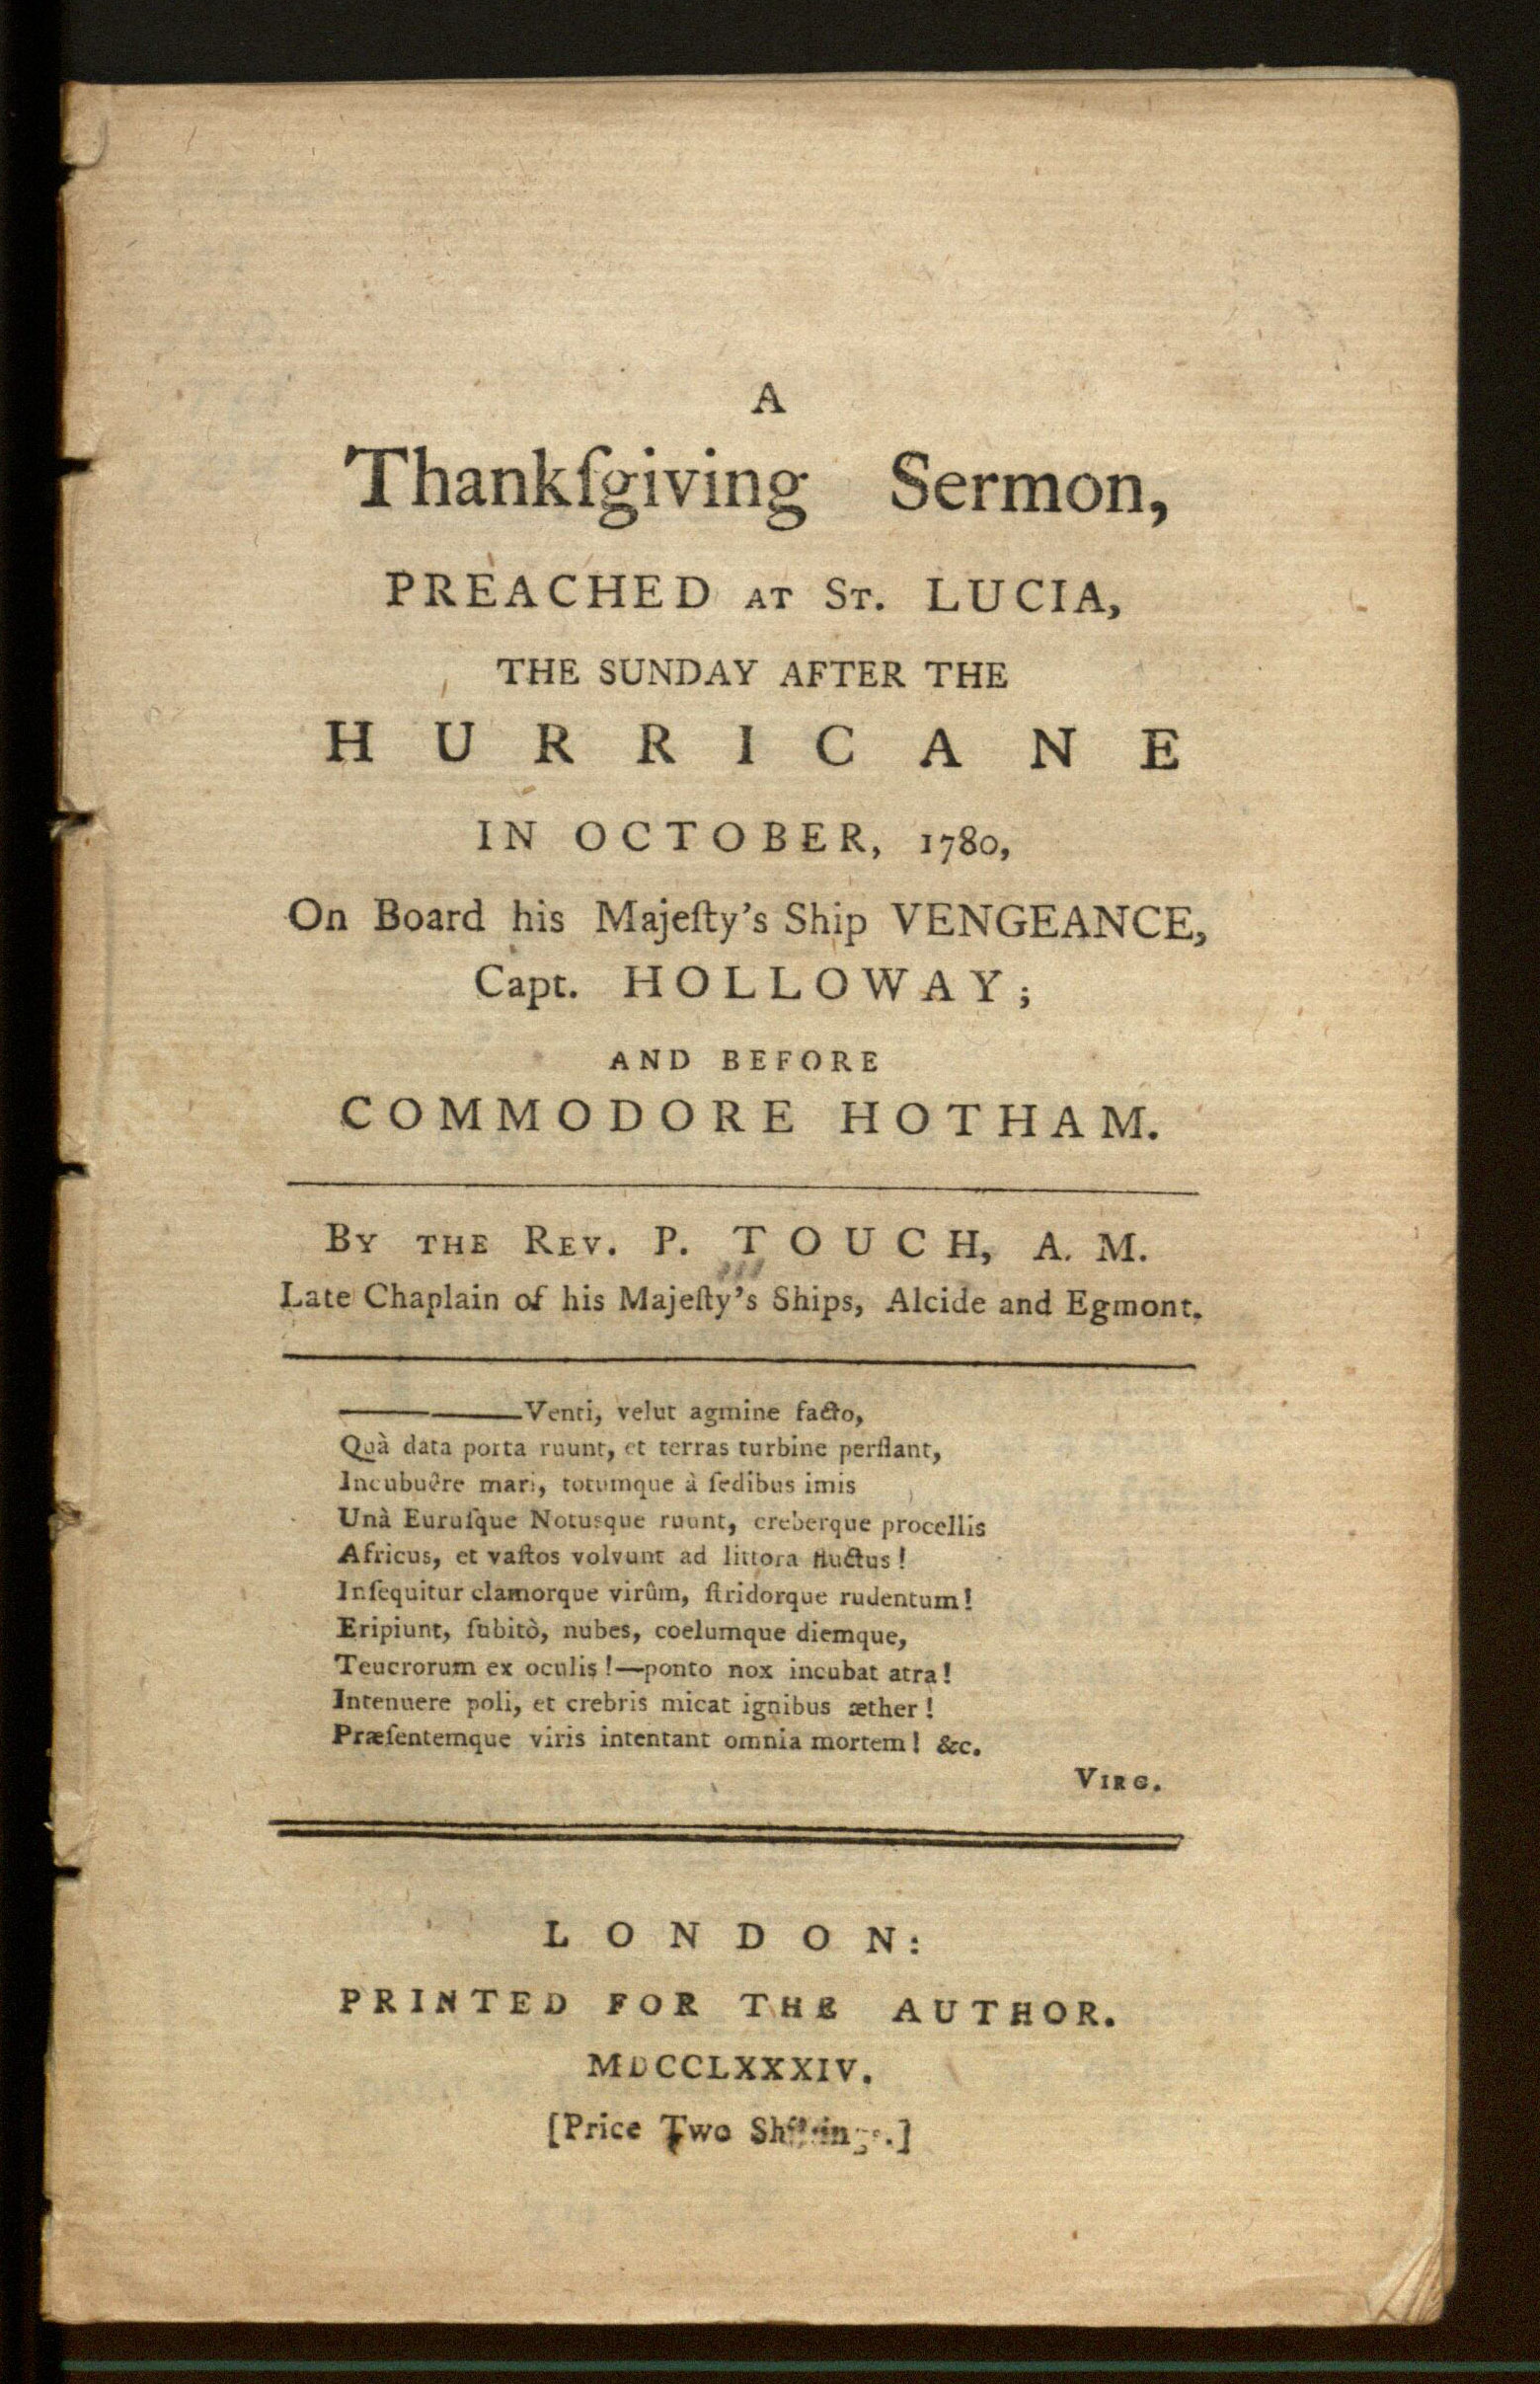 A thanksgiving sermon : preached at St. Lucia, the Sunday after the hurricane in October, 1780, on board His Majesty's Ship Vengeance, Capt. Holloway, and before Commodore Hotham / by the Rev. P. Touch.